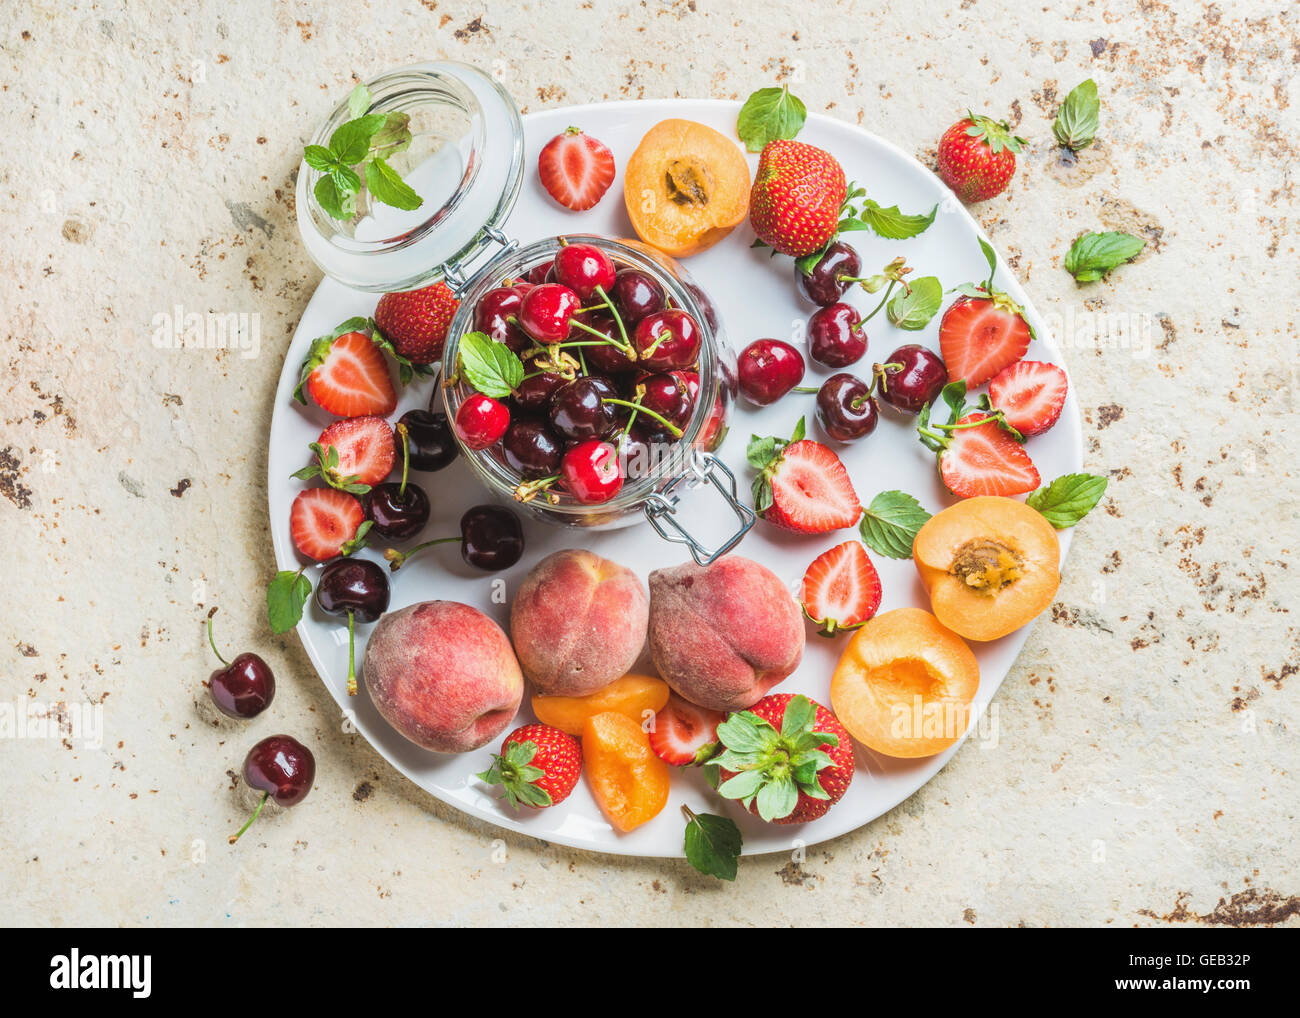 Healthy summer fruit variety. Sweet cherries, strawberries, peaches, apricots and mint leaves on white ceramic serving - Stock Image